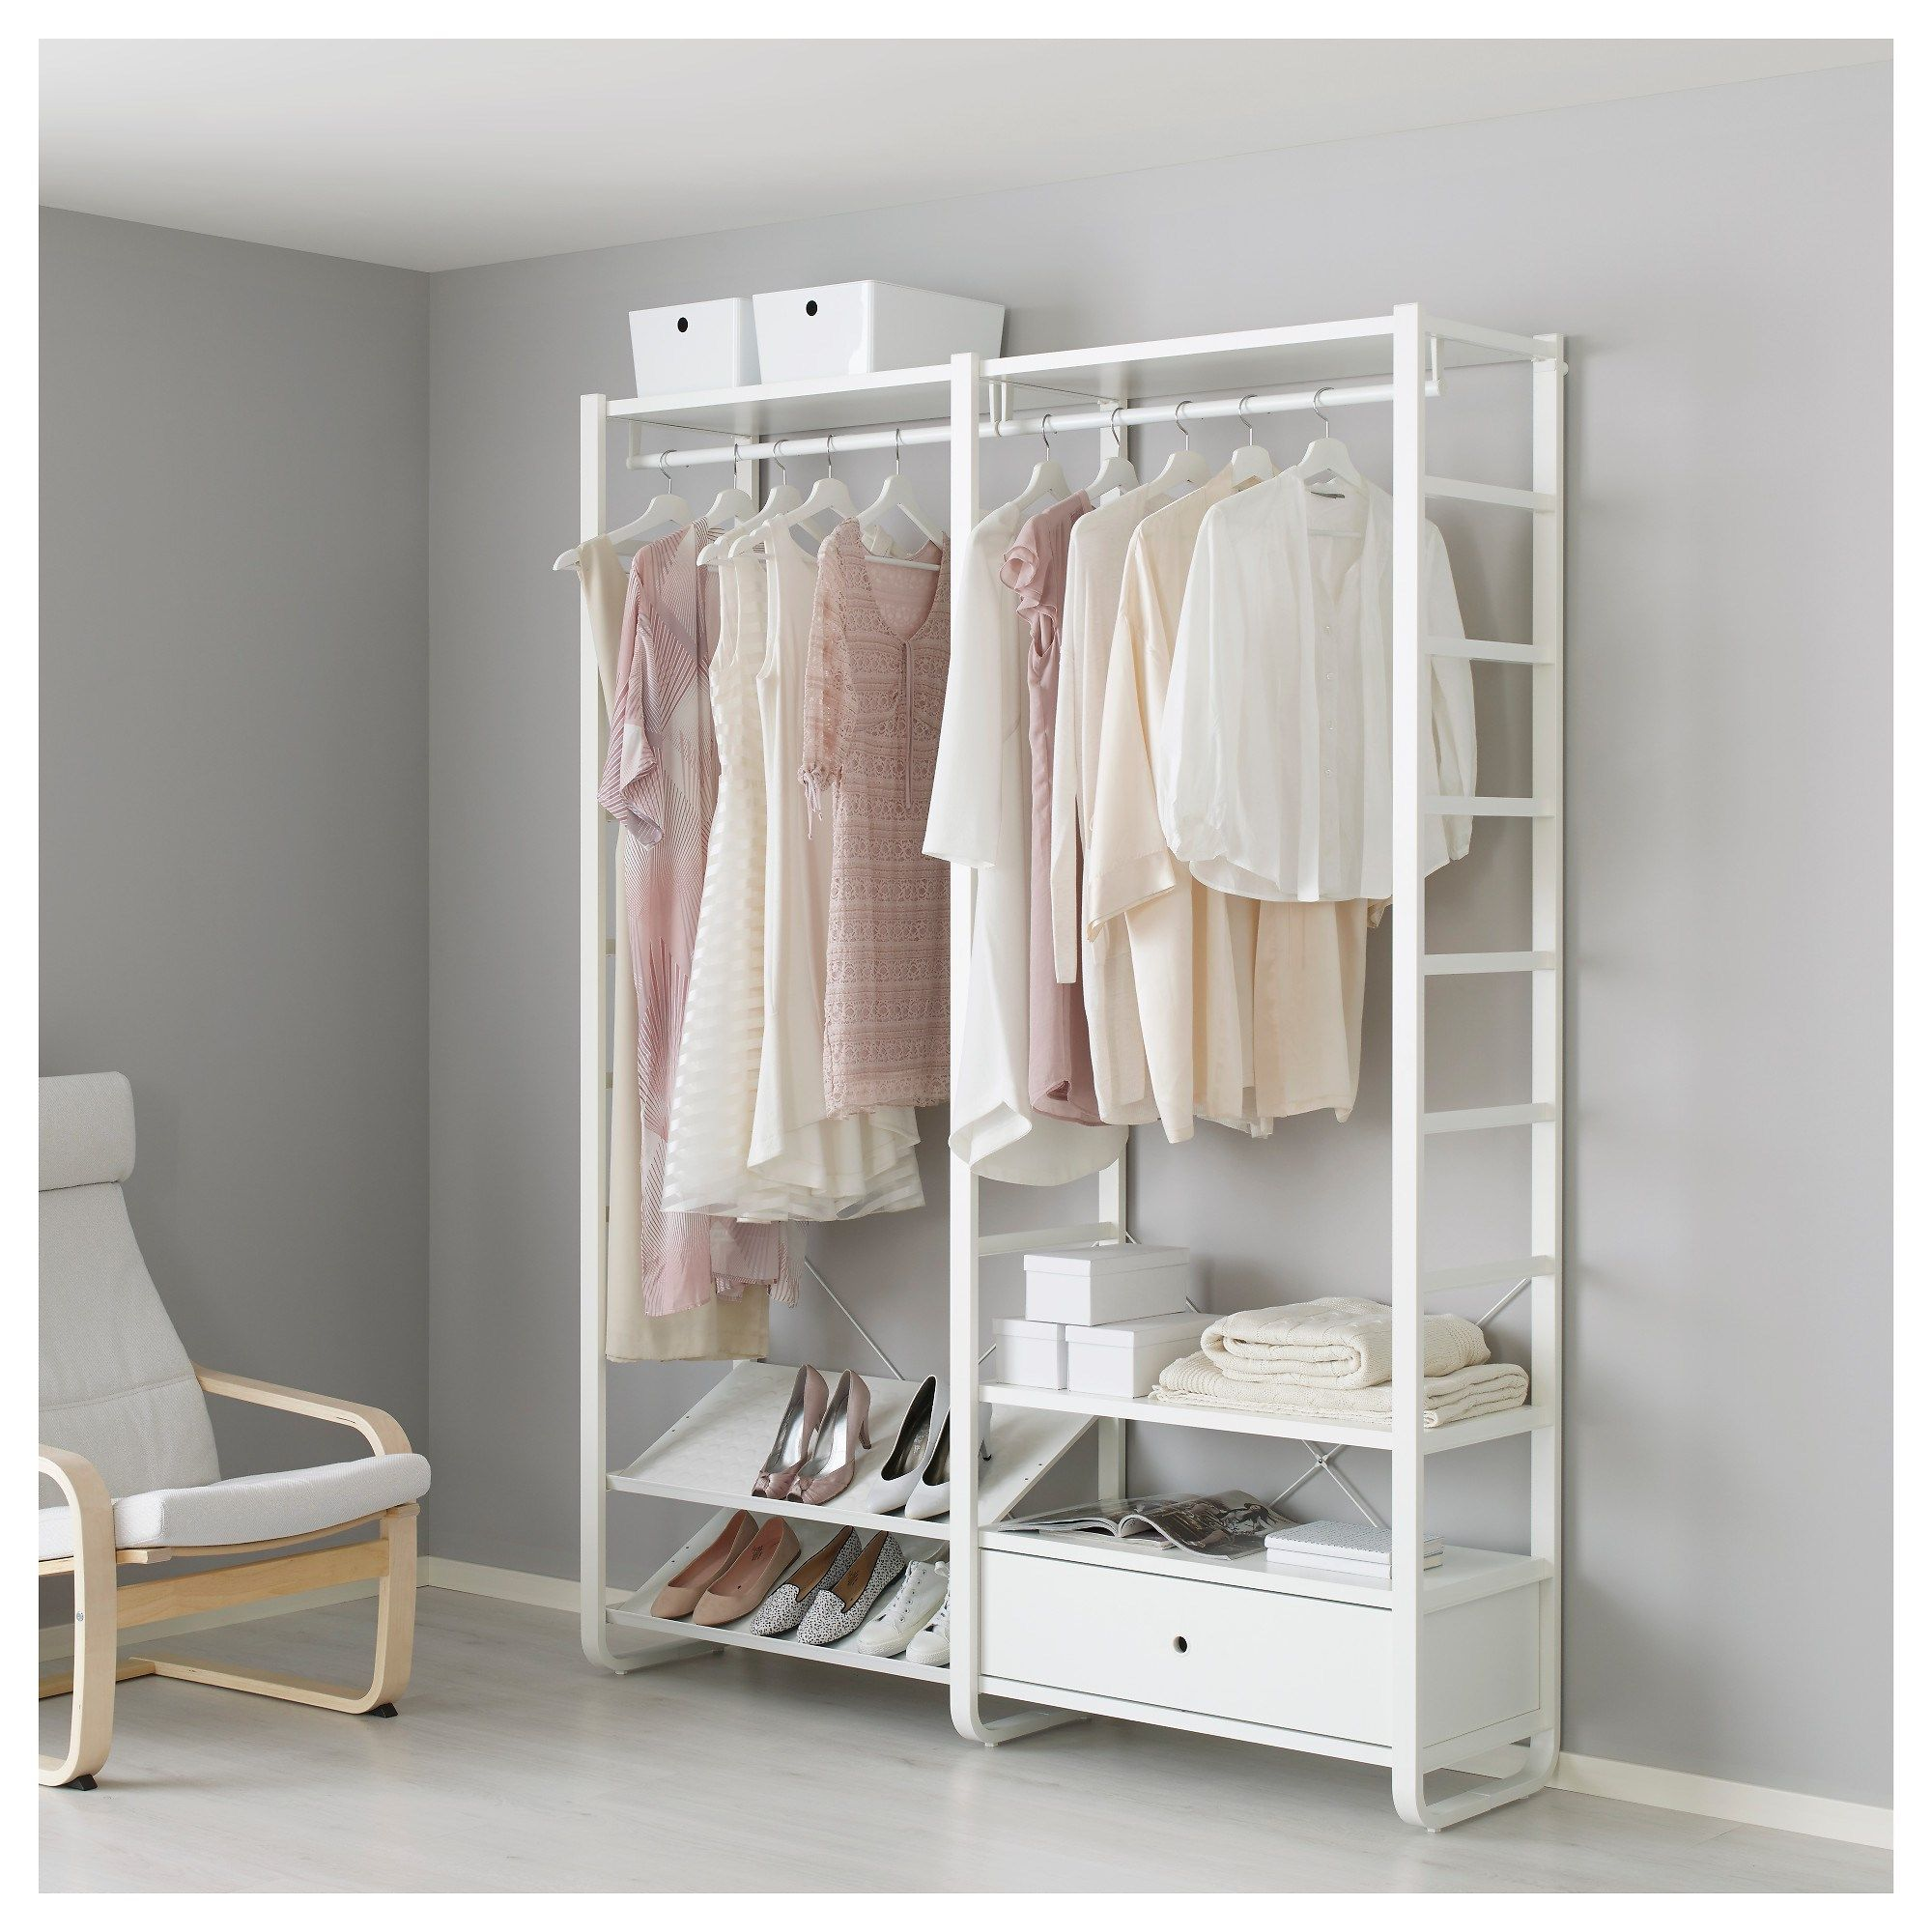 Pleasing ikea portable closet storage roselawnlutheran - Ikea storage bedroom ...